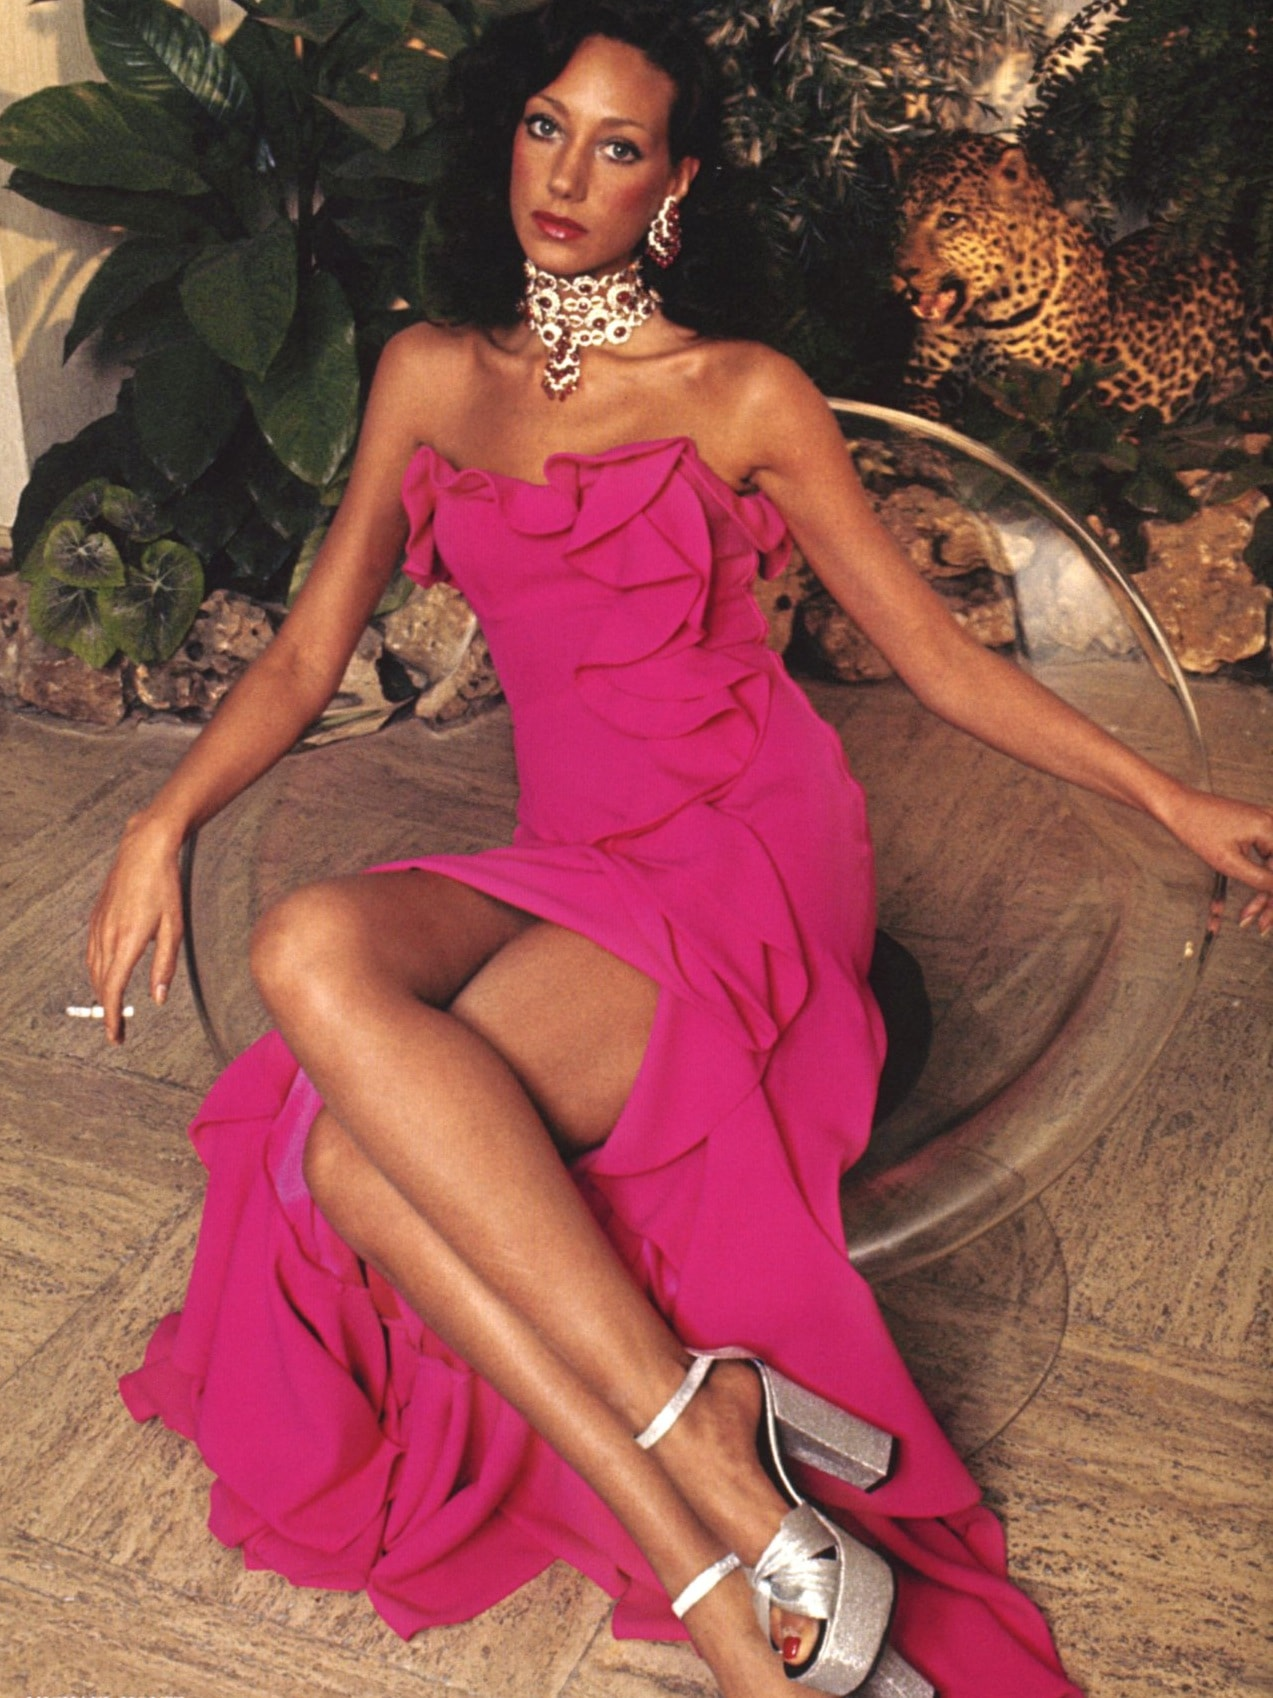 Marisa Berenson For mobile